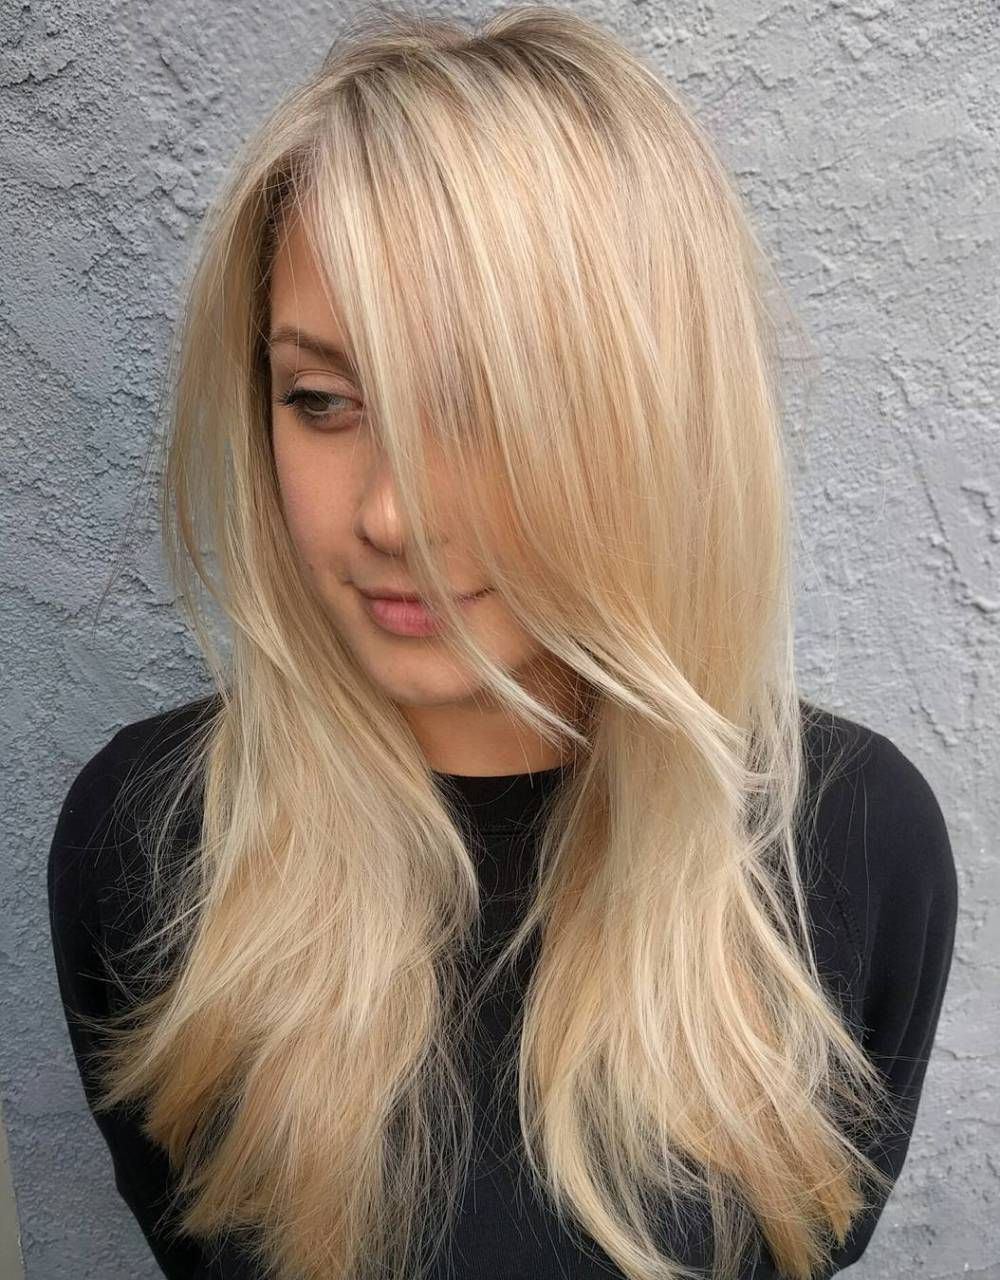 40 Long Hairstyles And Haircuts For Fine Hair Hair Cuts For Thin